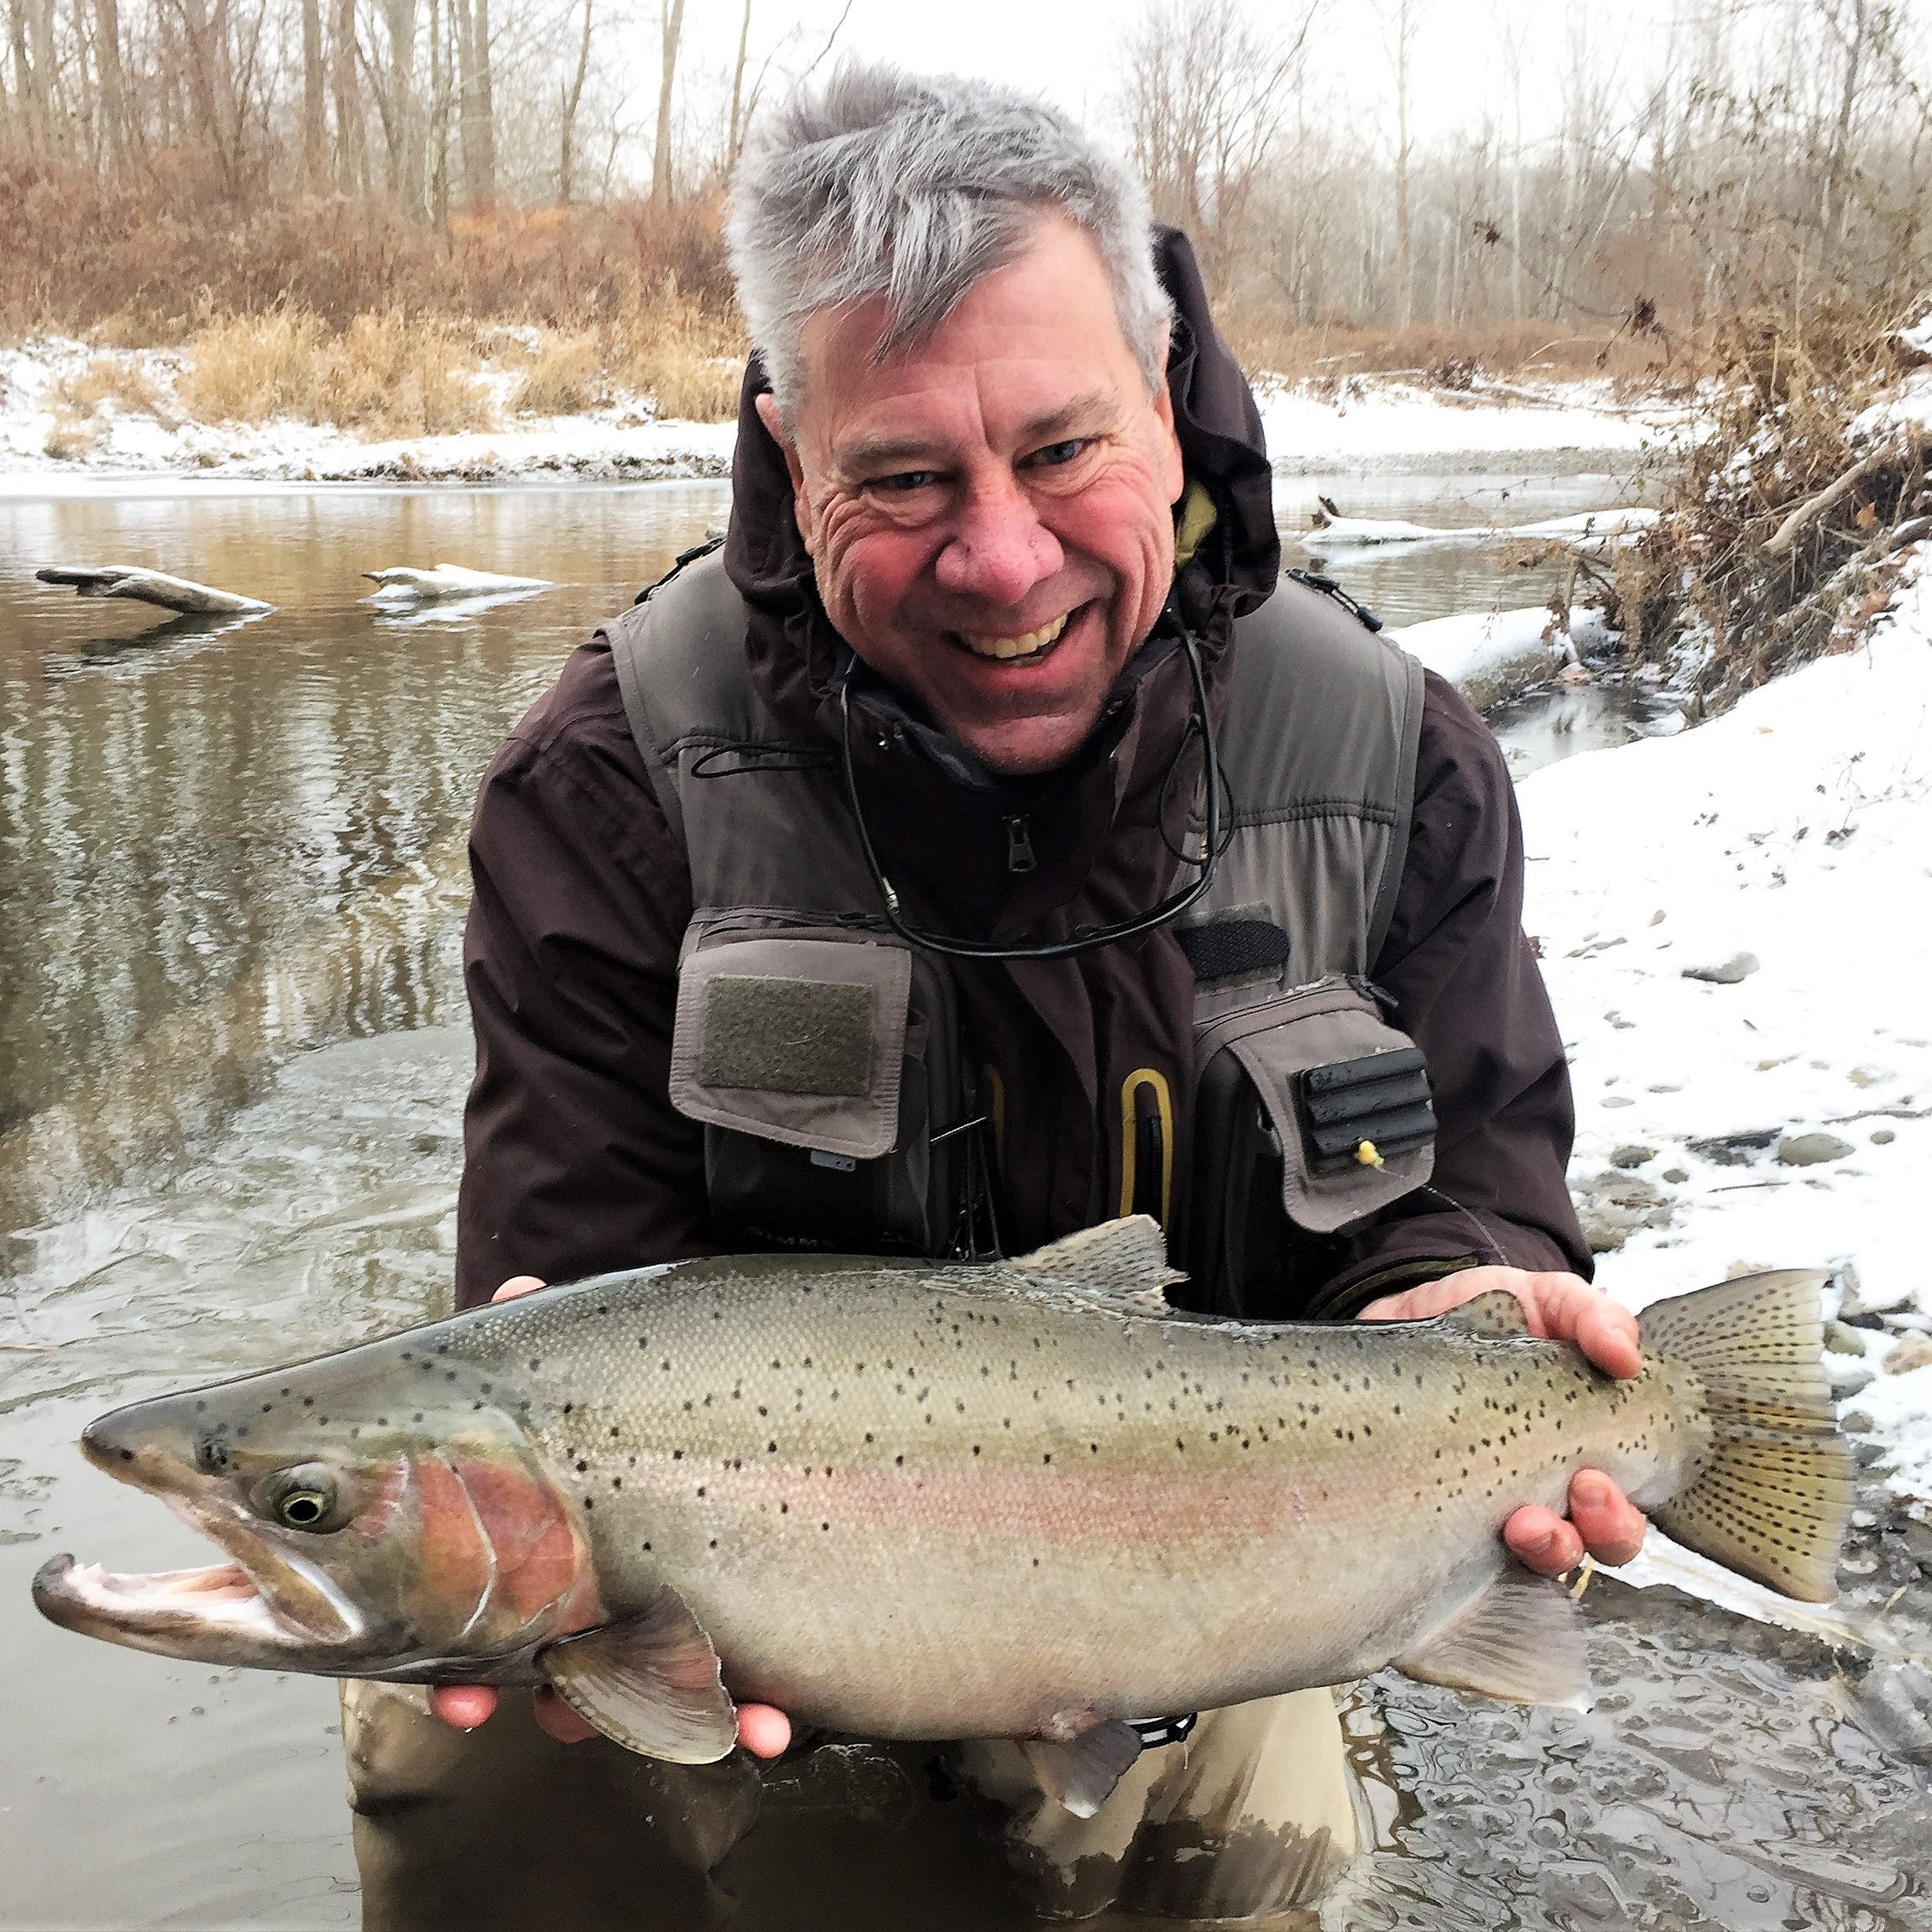 Southern Tier fly anglers tune up for trout fishing opener